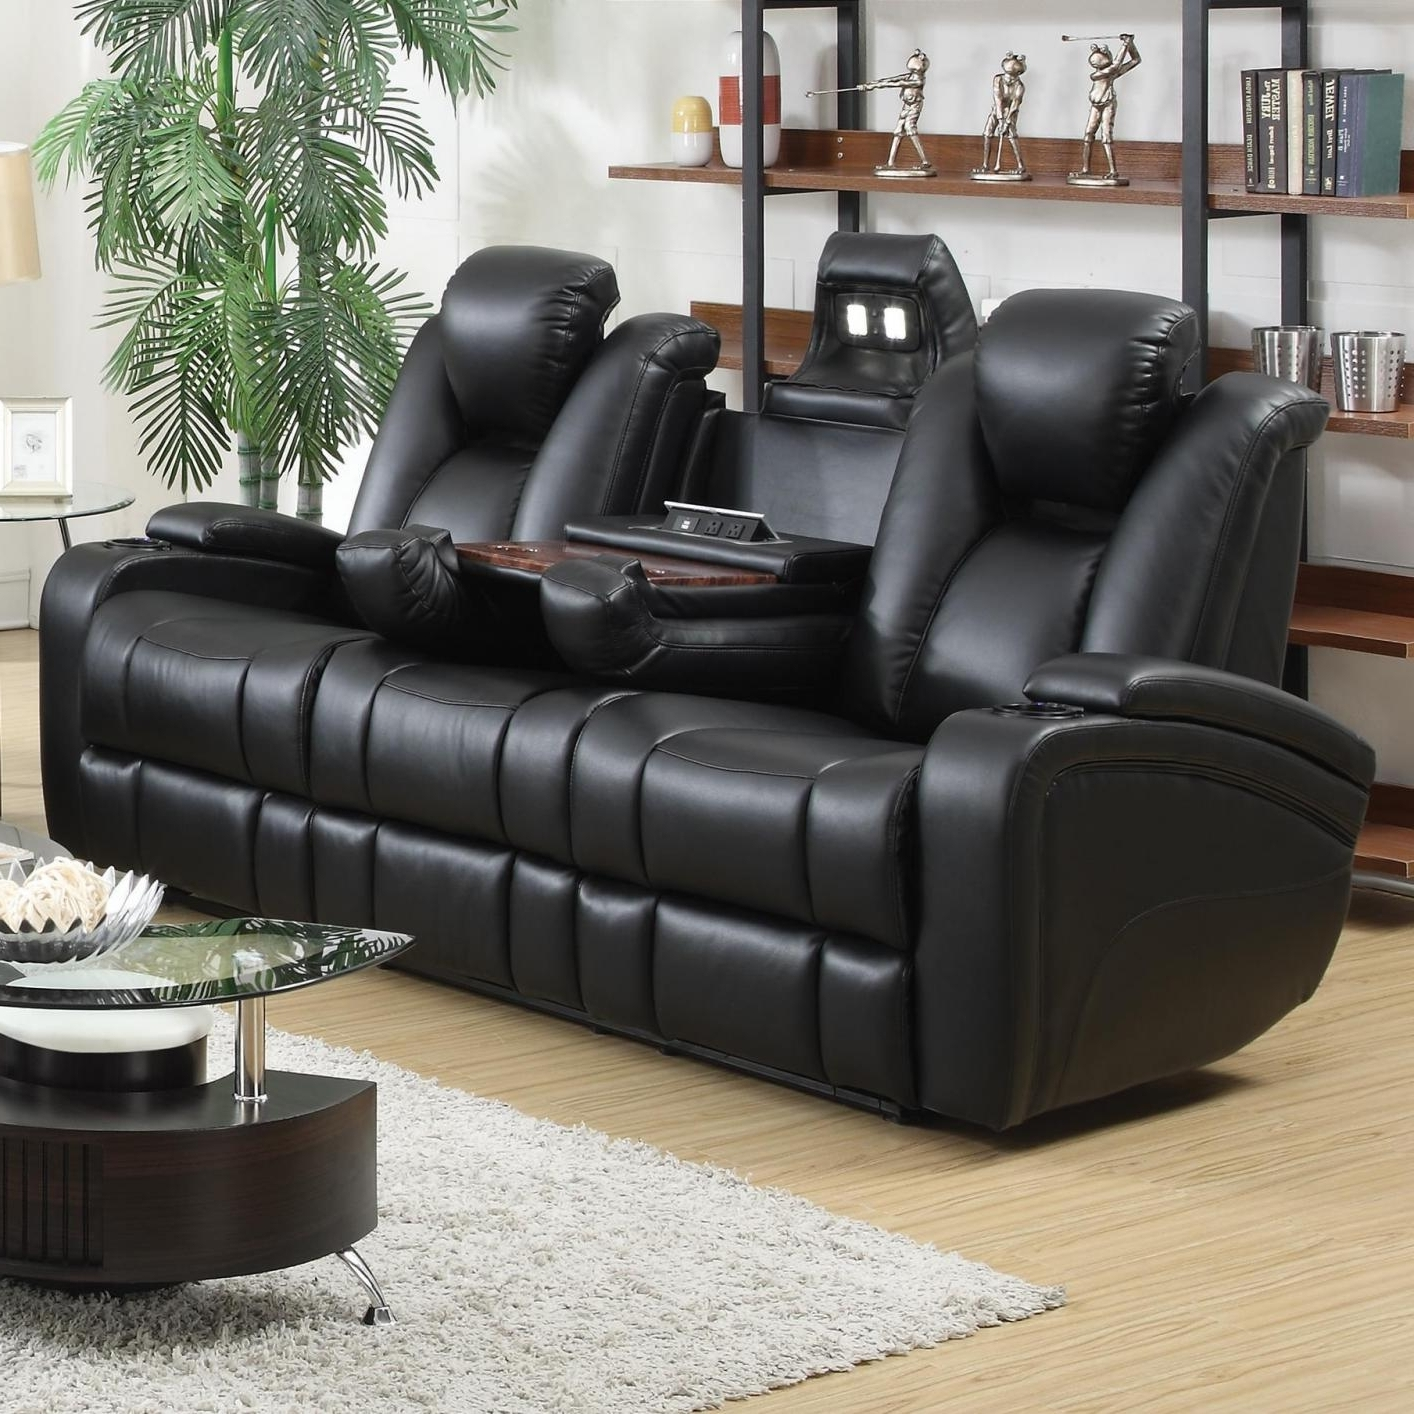 Uncategorized : Reclining Sofa And Loveseat Sets Inside Best With Regard To Widely Used Red Leather Reclining Sofas And Loveseats (View 14 of 15)